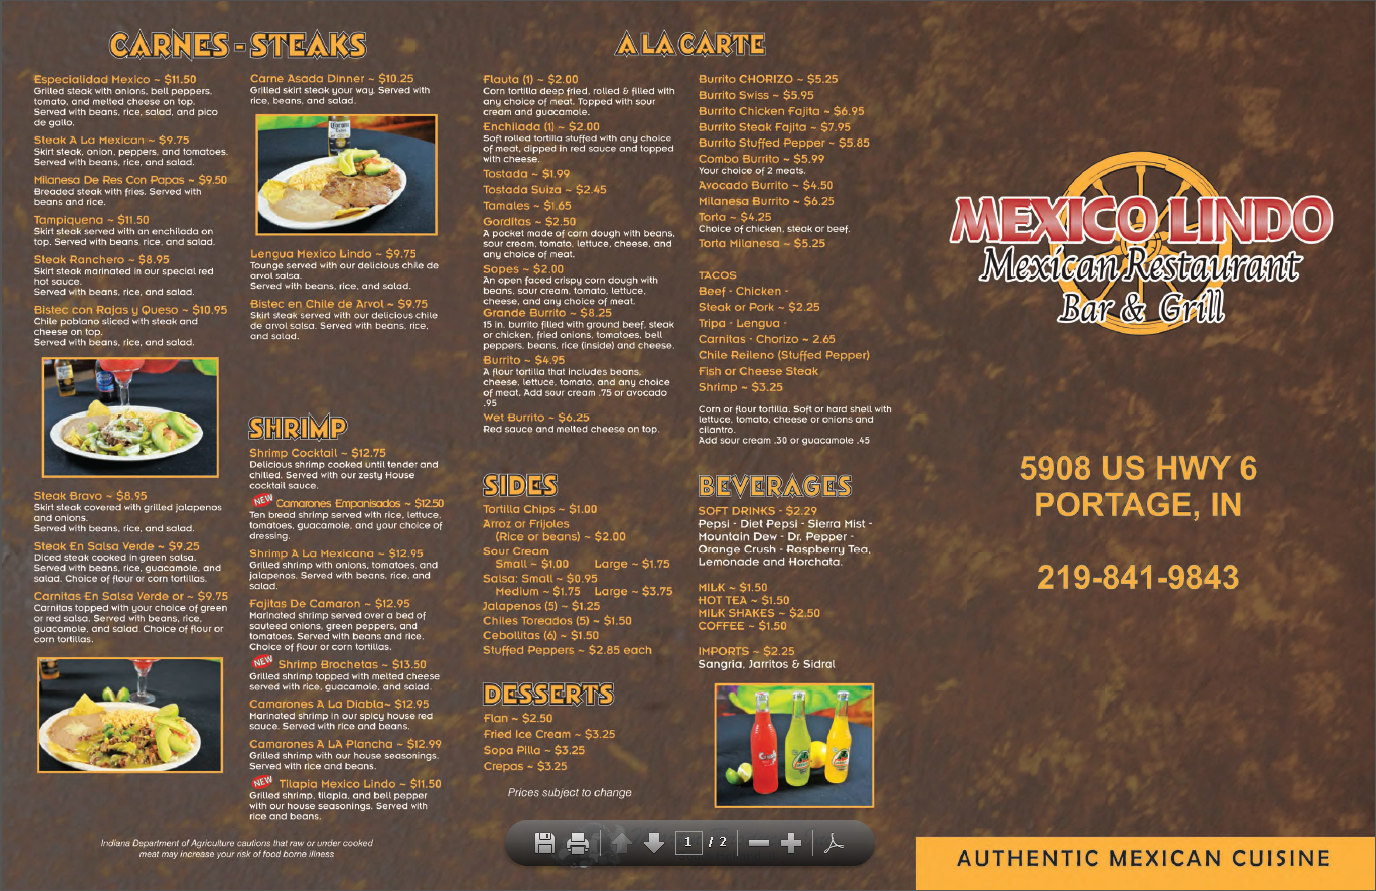 Mexico Lindo Mexican Restaurant Bar and Grill image 7